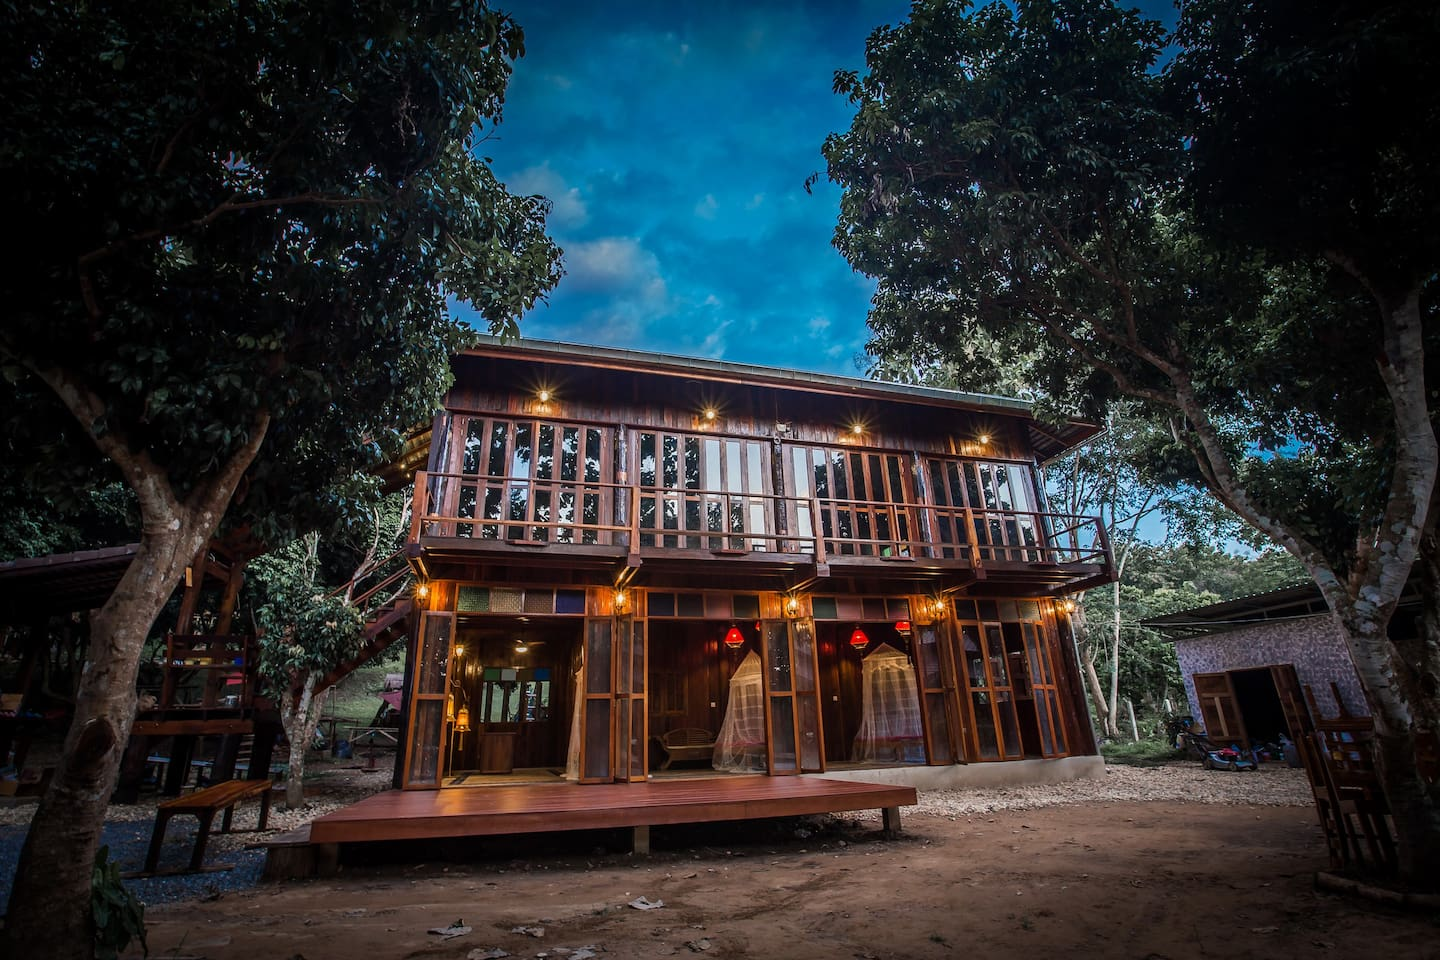 The 2 story recycled teak house.